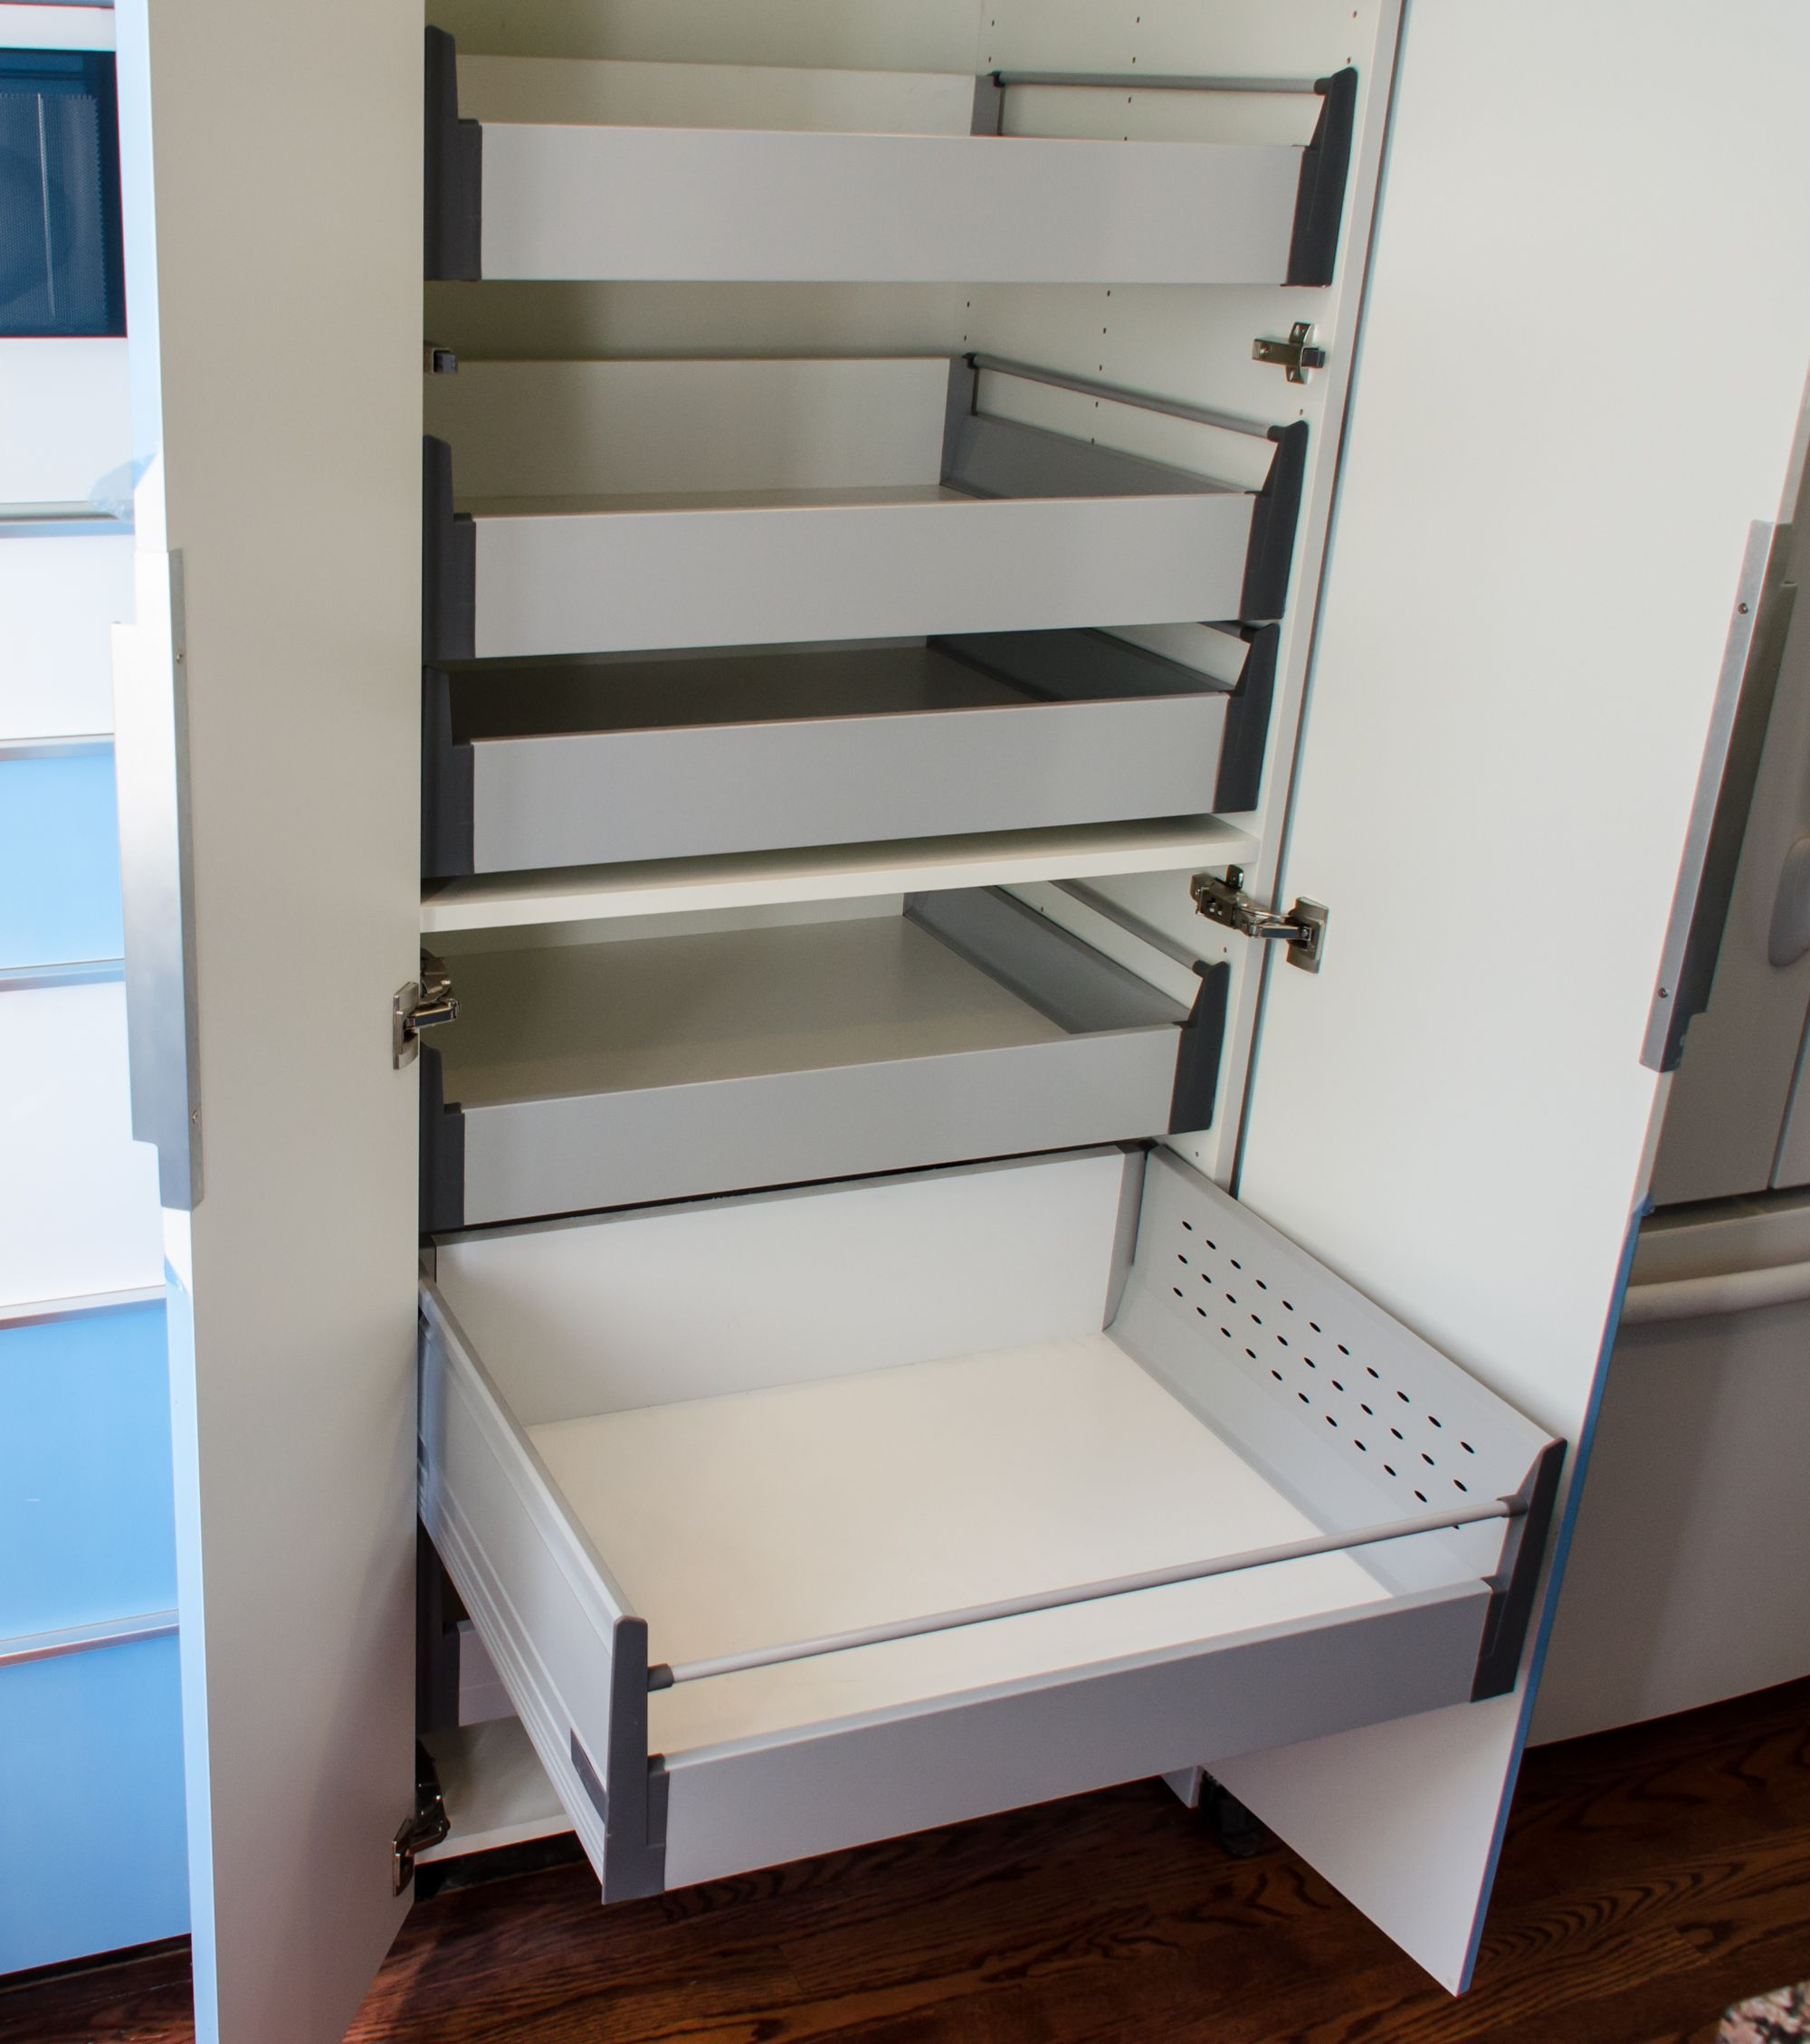 Ikea Akurum High Cabinet Hack With Sliding Shelves Slide